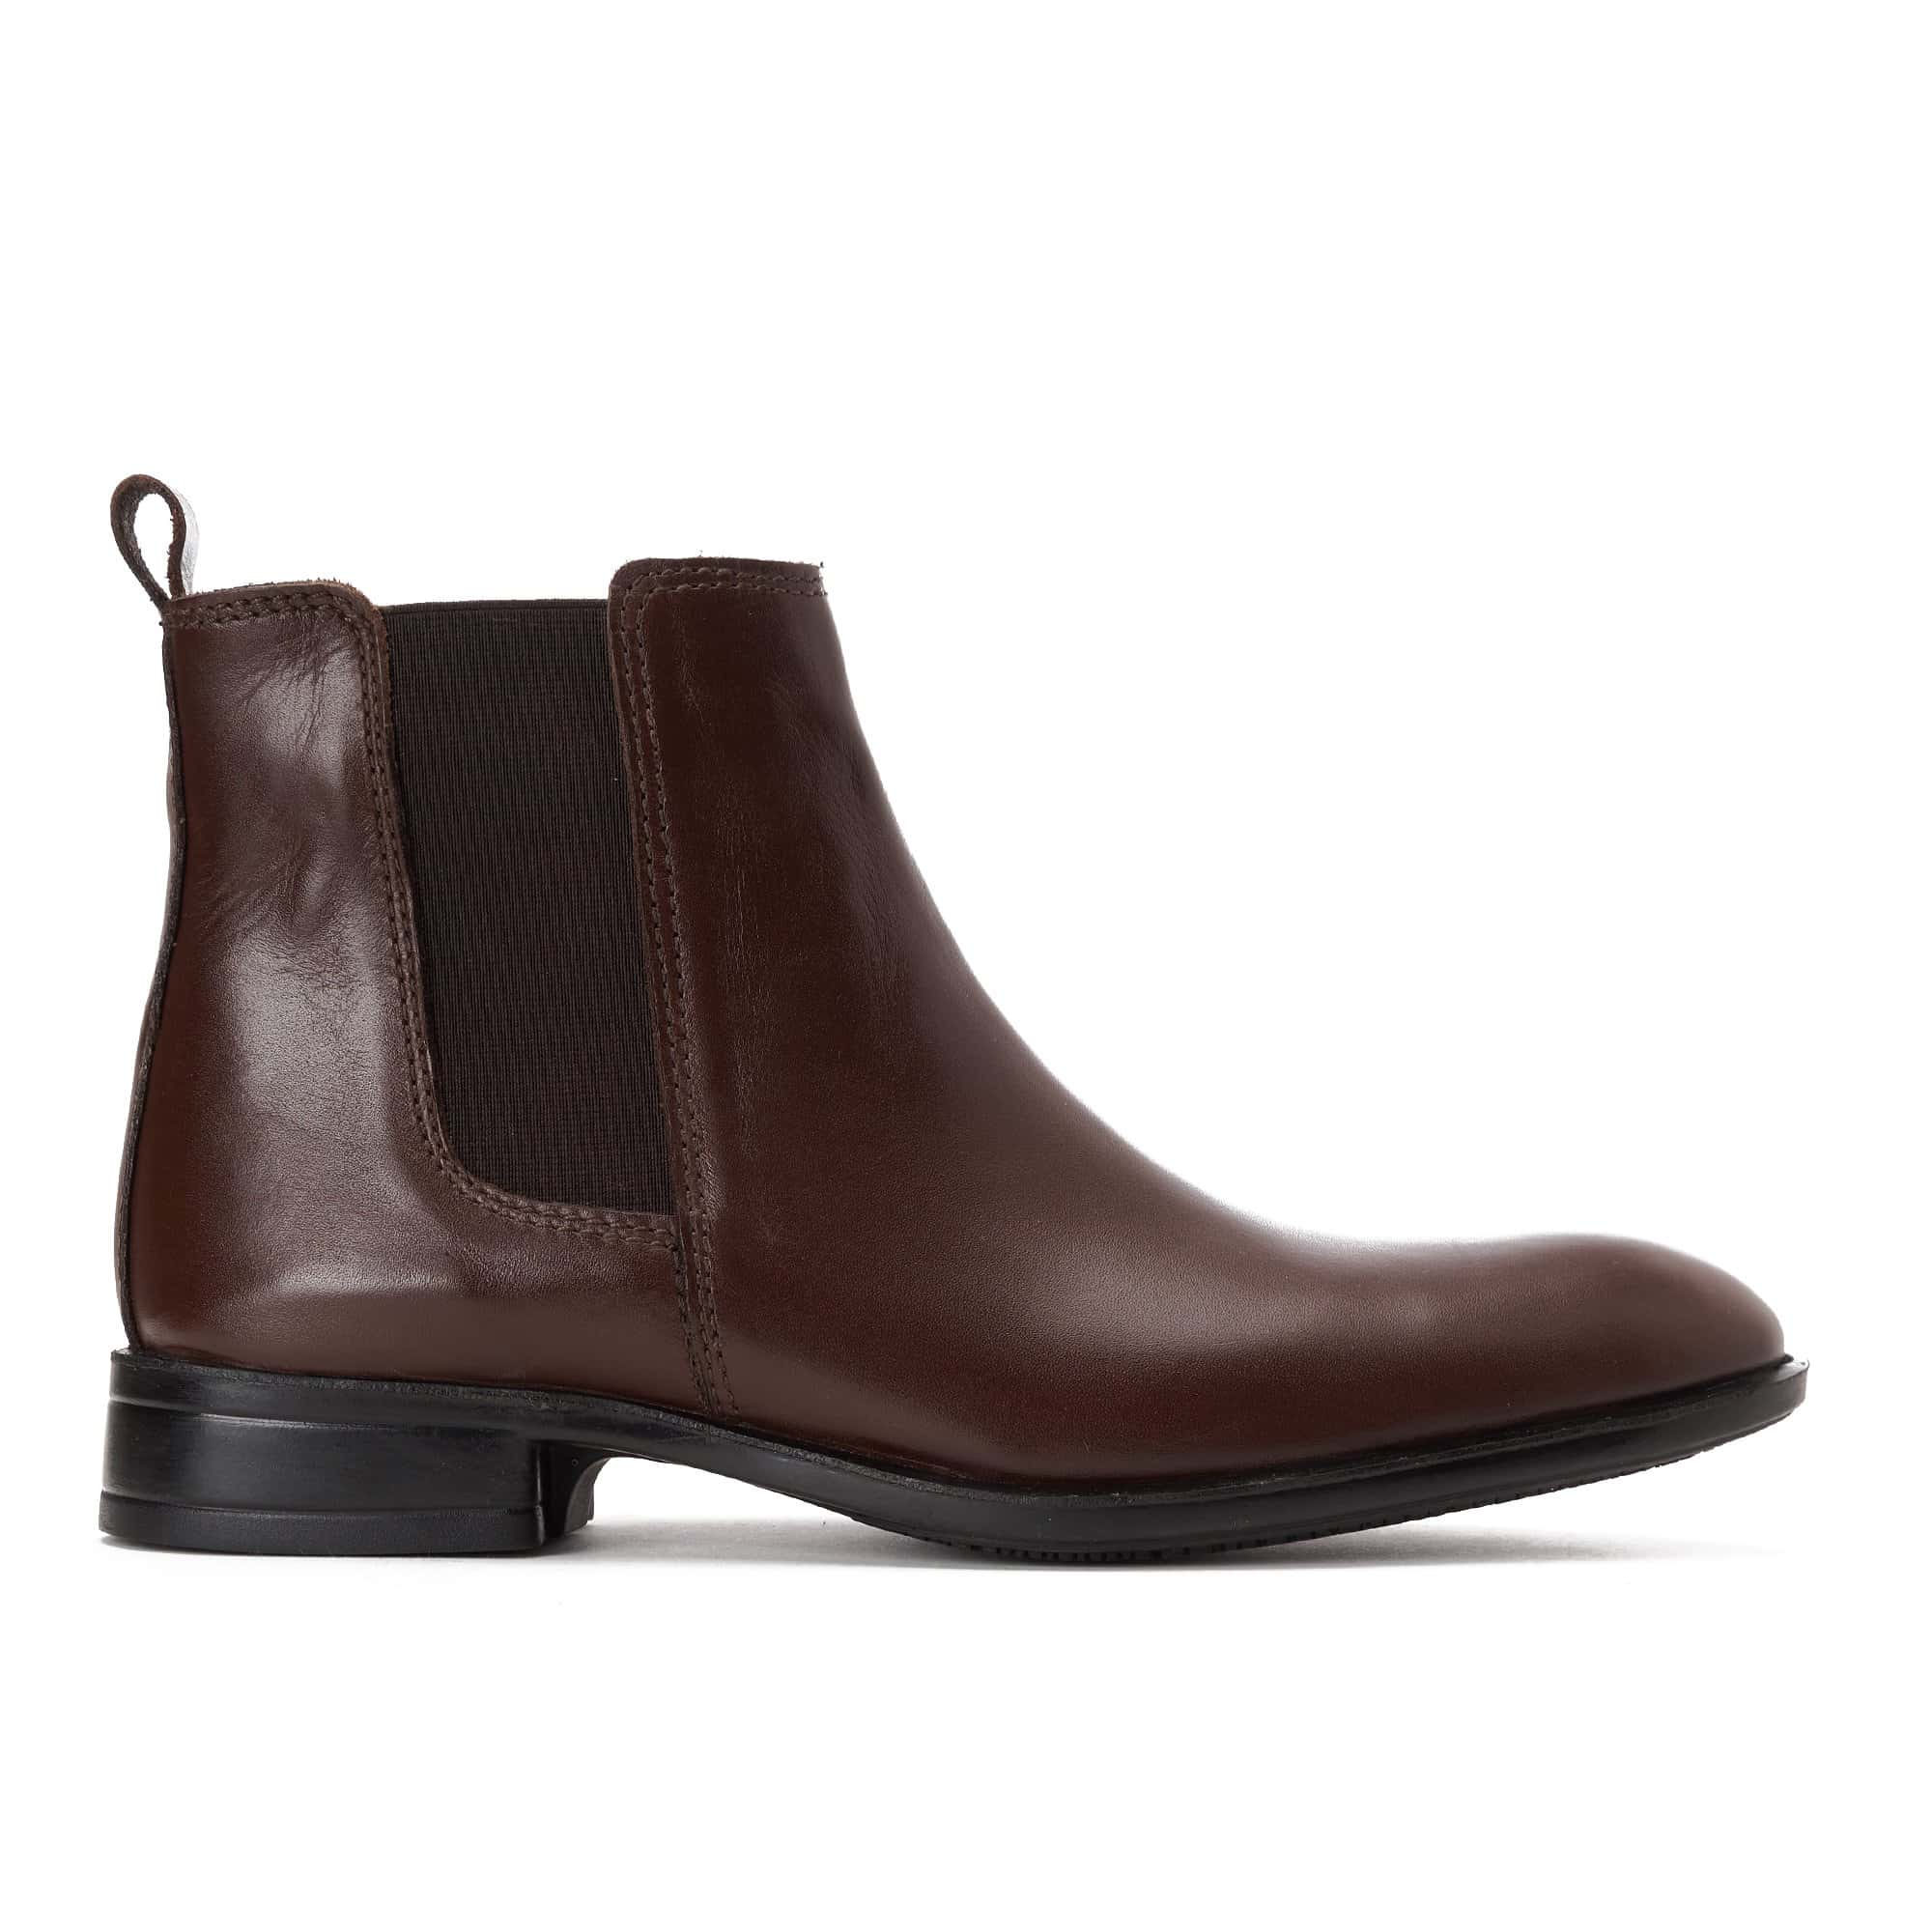 Half boot Leather brown